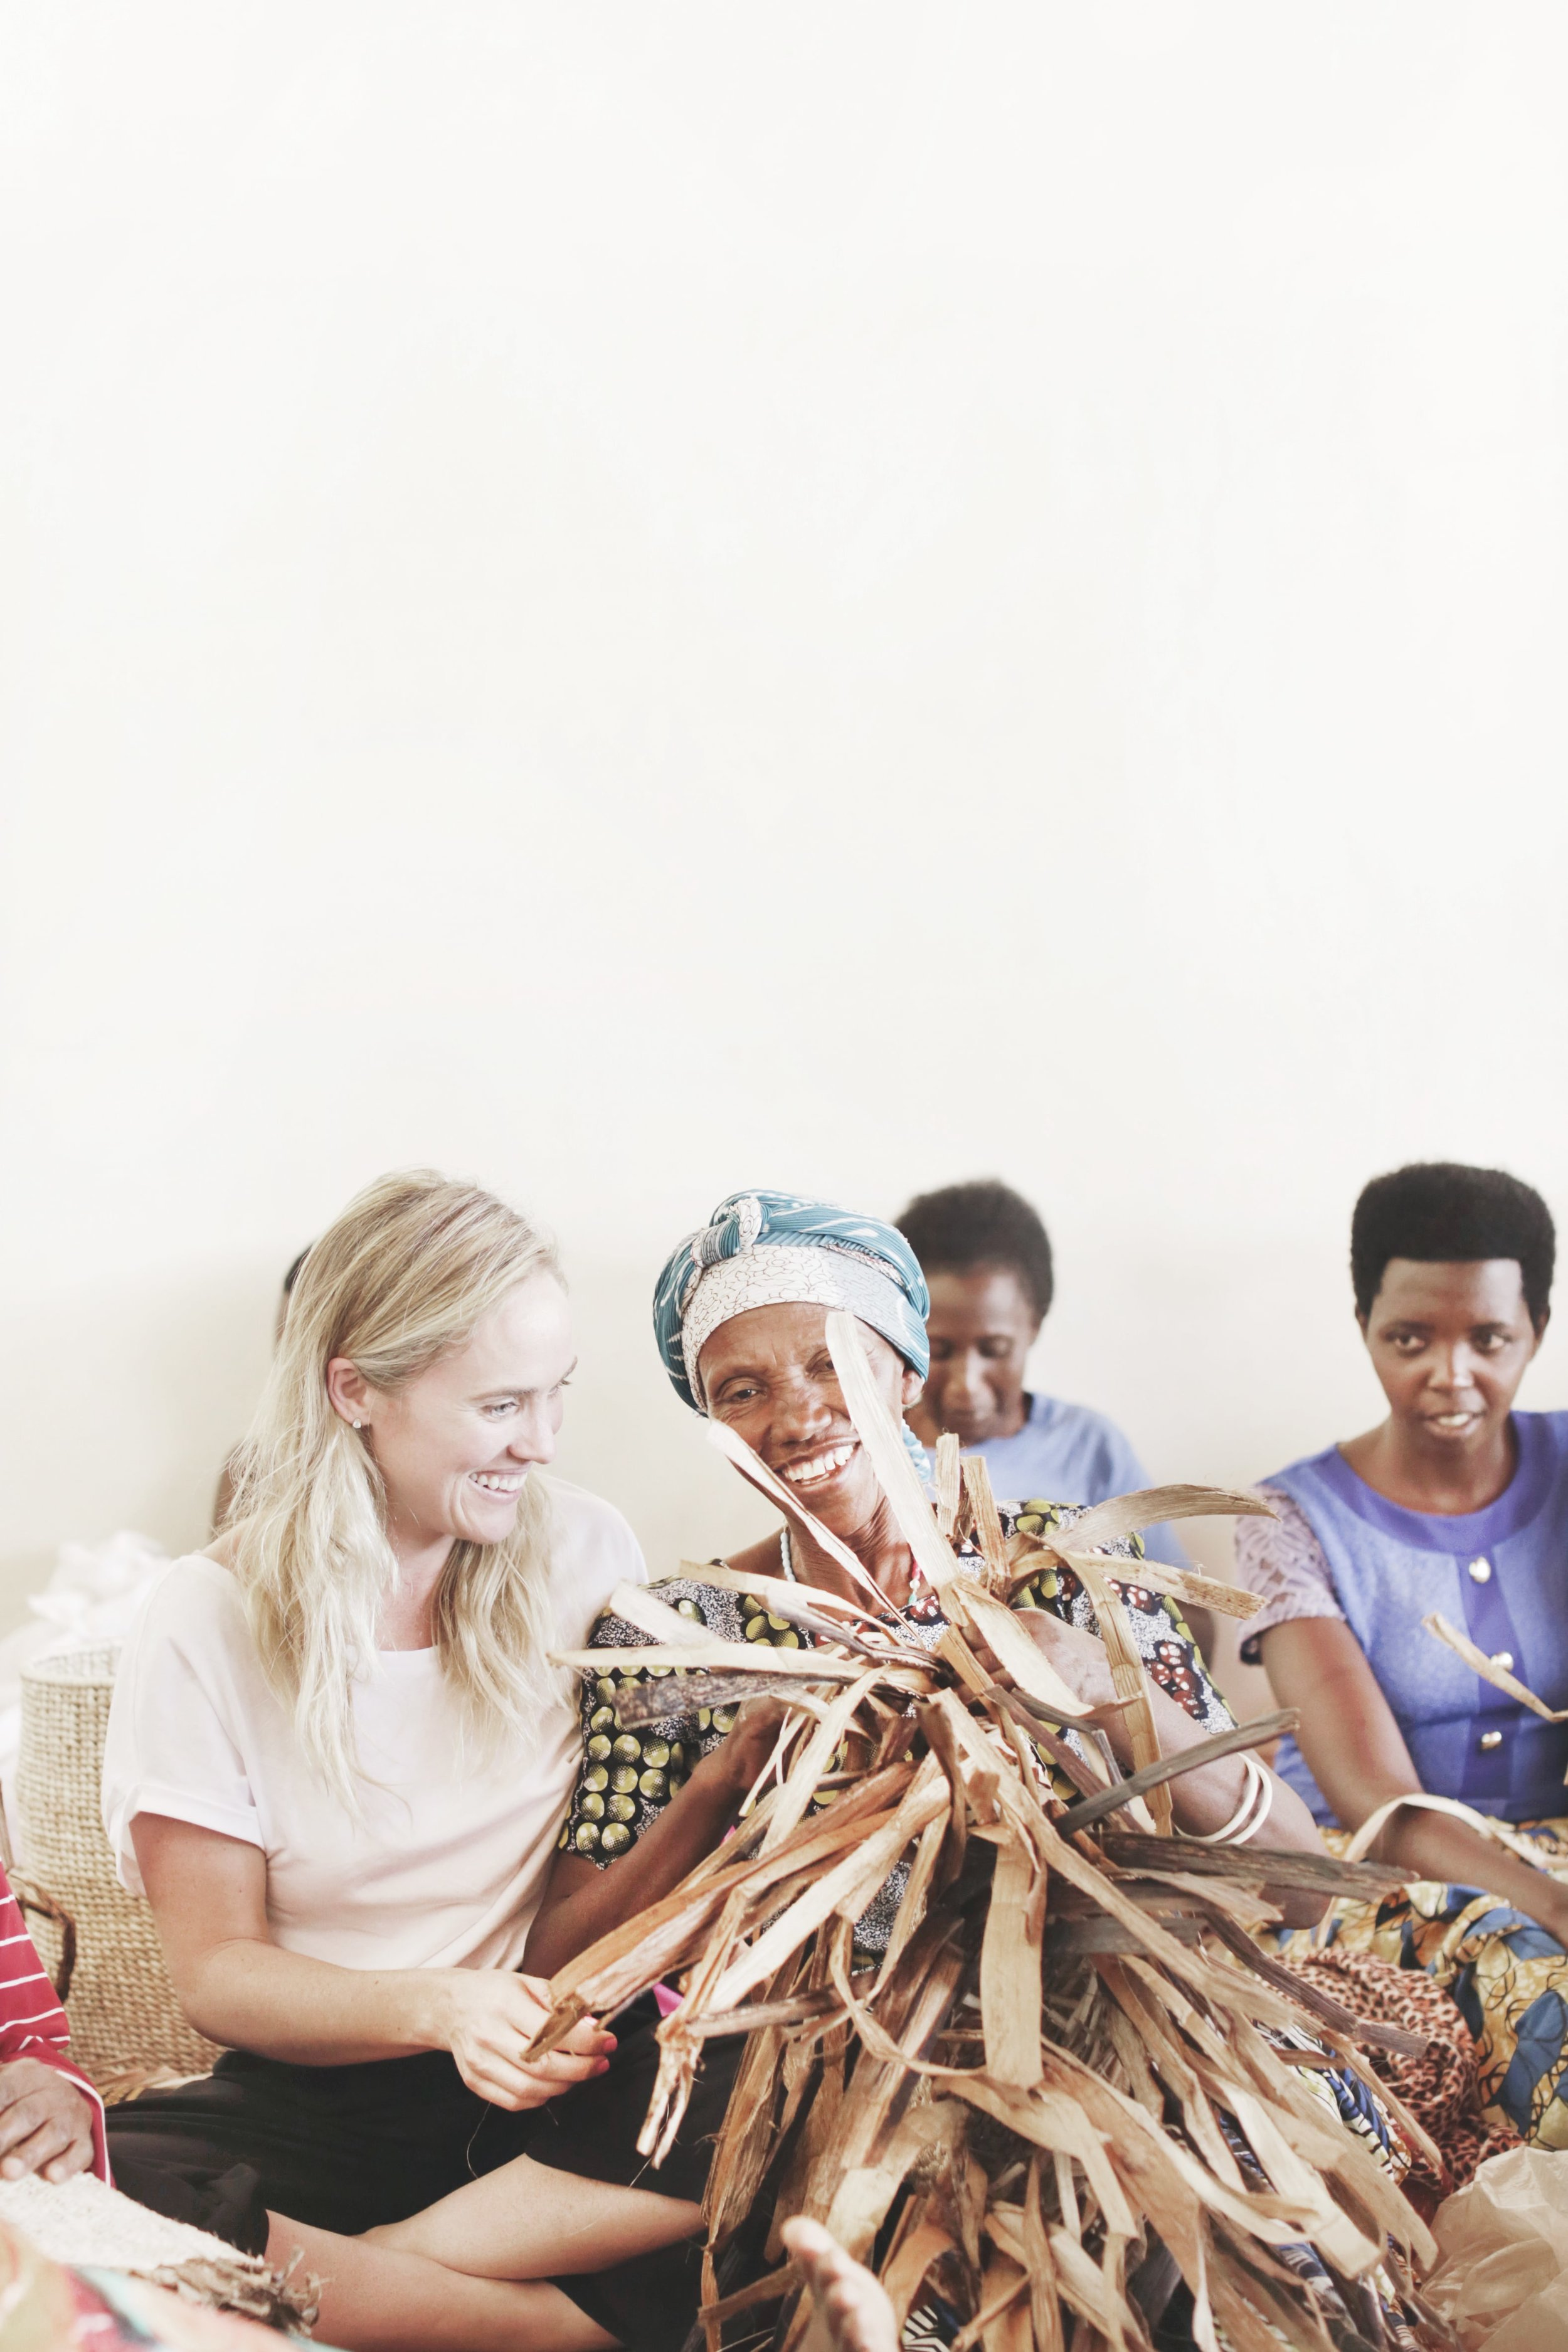 Deirdre working with the artisans on site in Rwanda